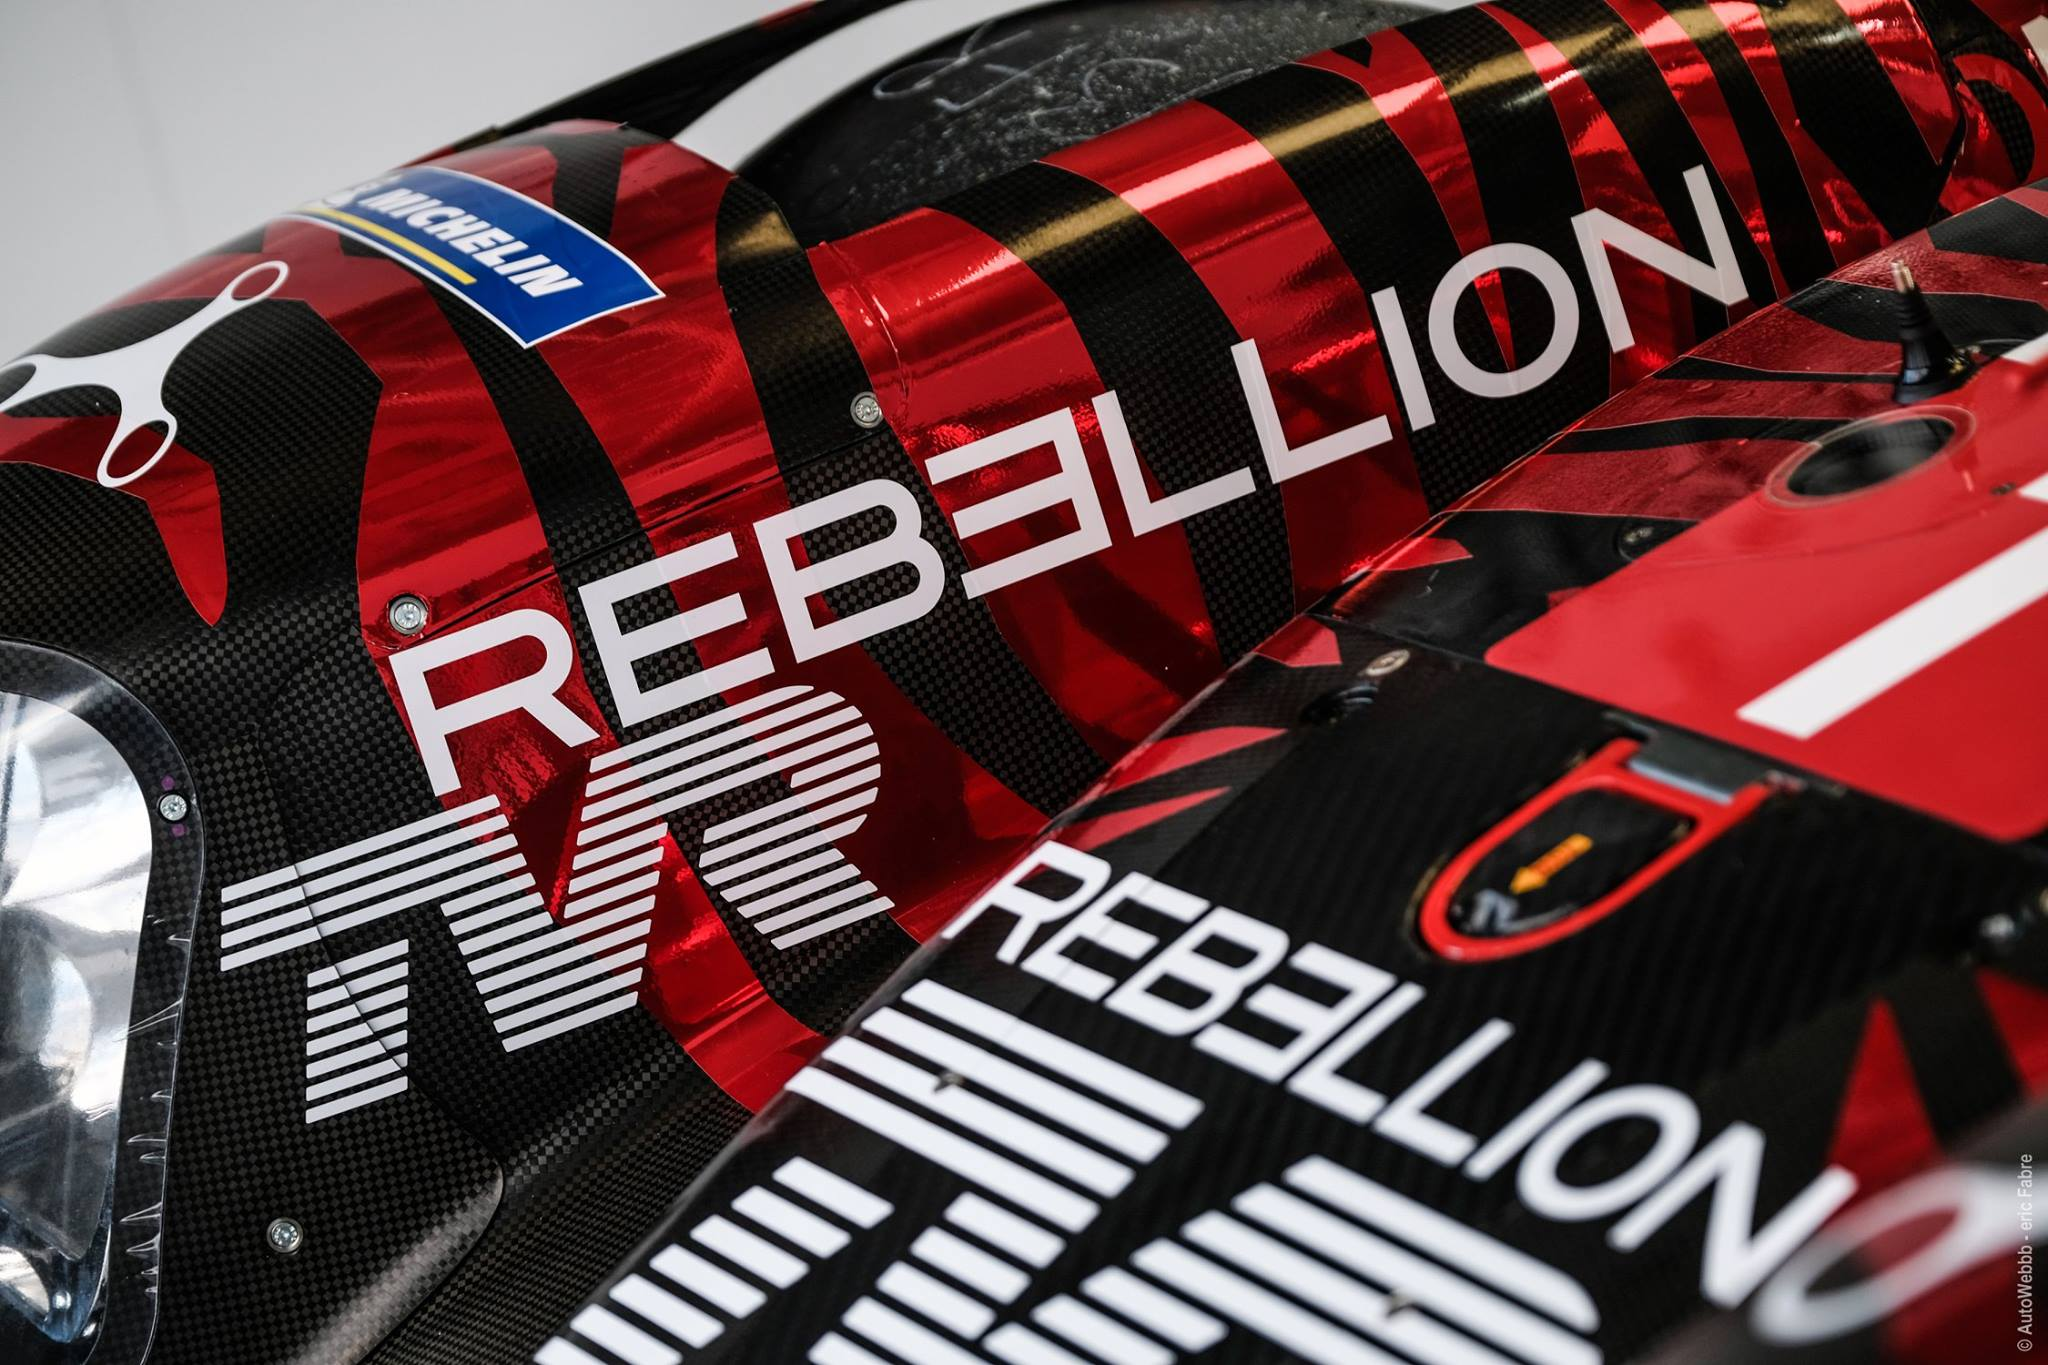 TVR de retour en Endurance avec Rebellion Racing